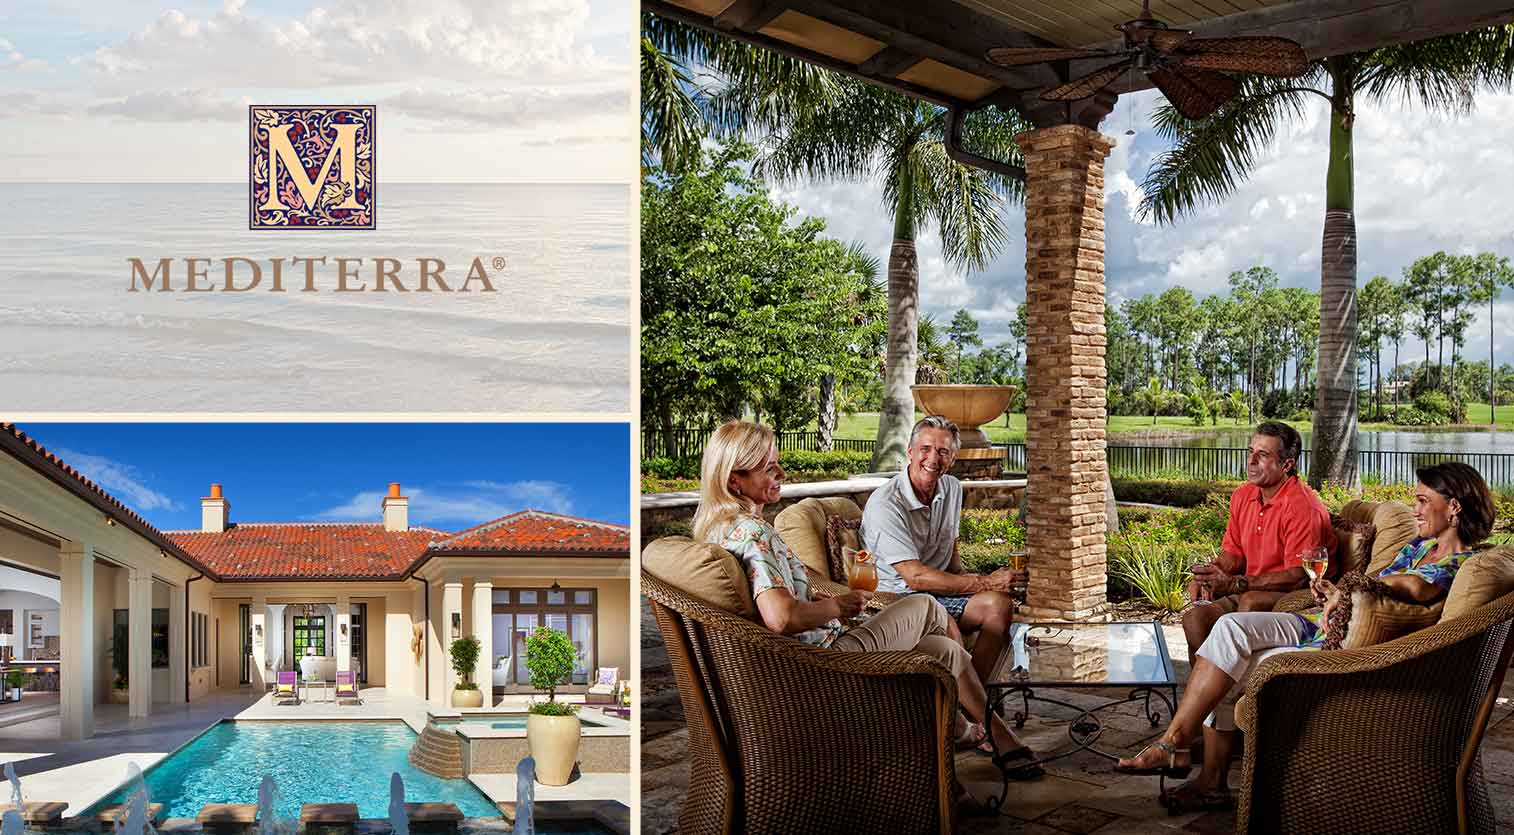 Want to know more about the Mediterra lifestyle? Contact us for more info.